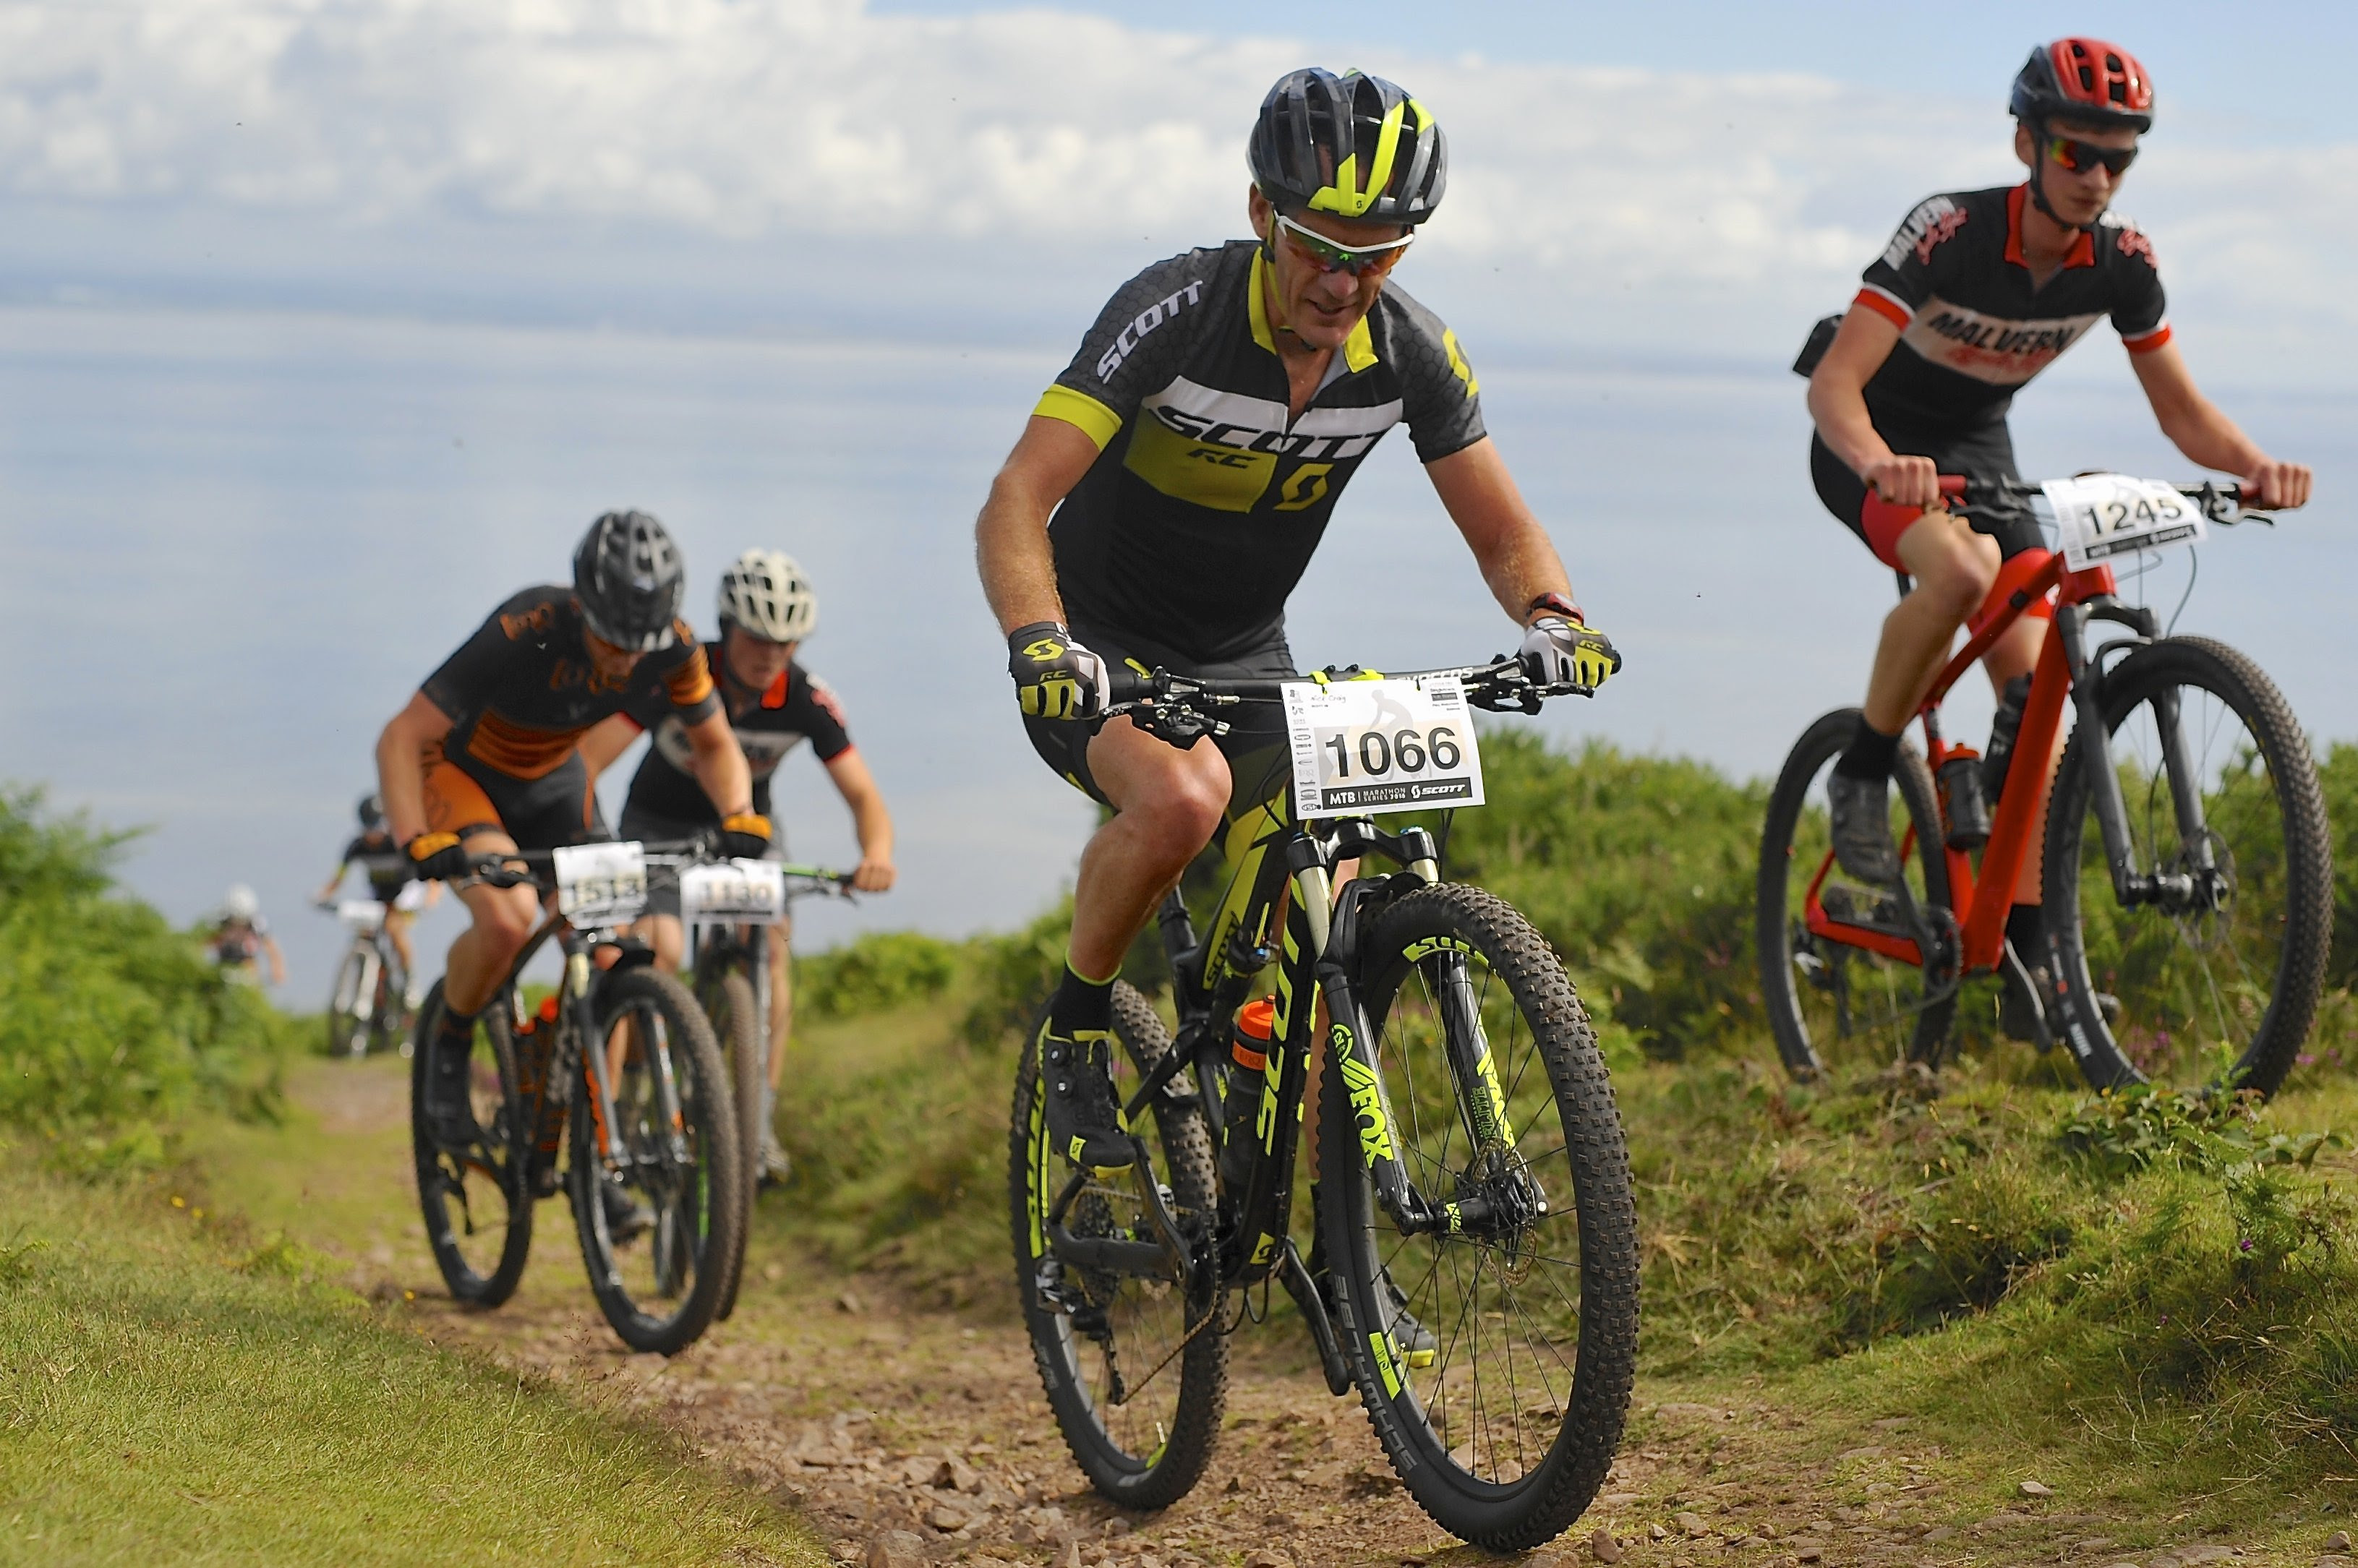 finest selection 8a34e 17865 Video: Behind The Scenes of the Scott MTB Marathon ...